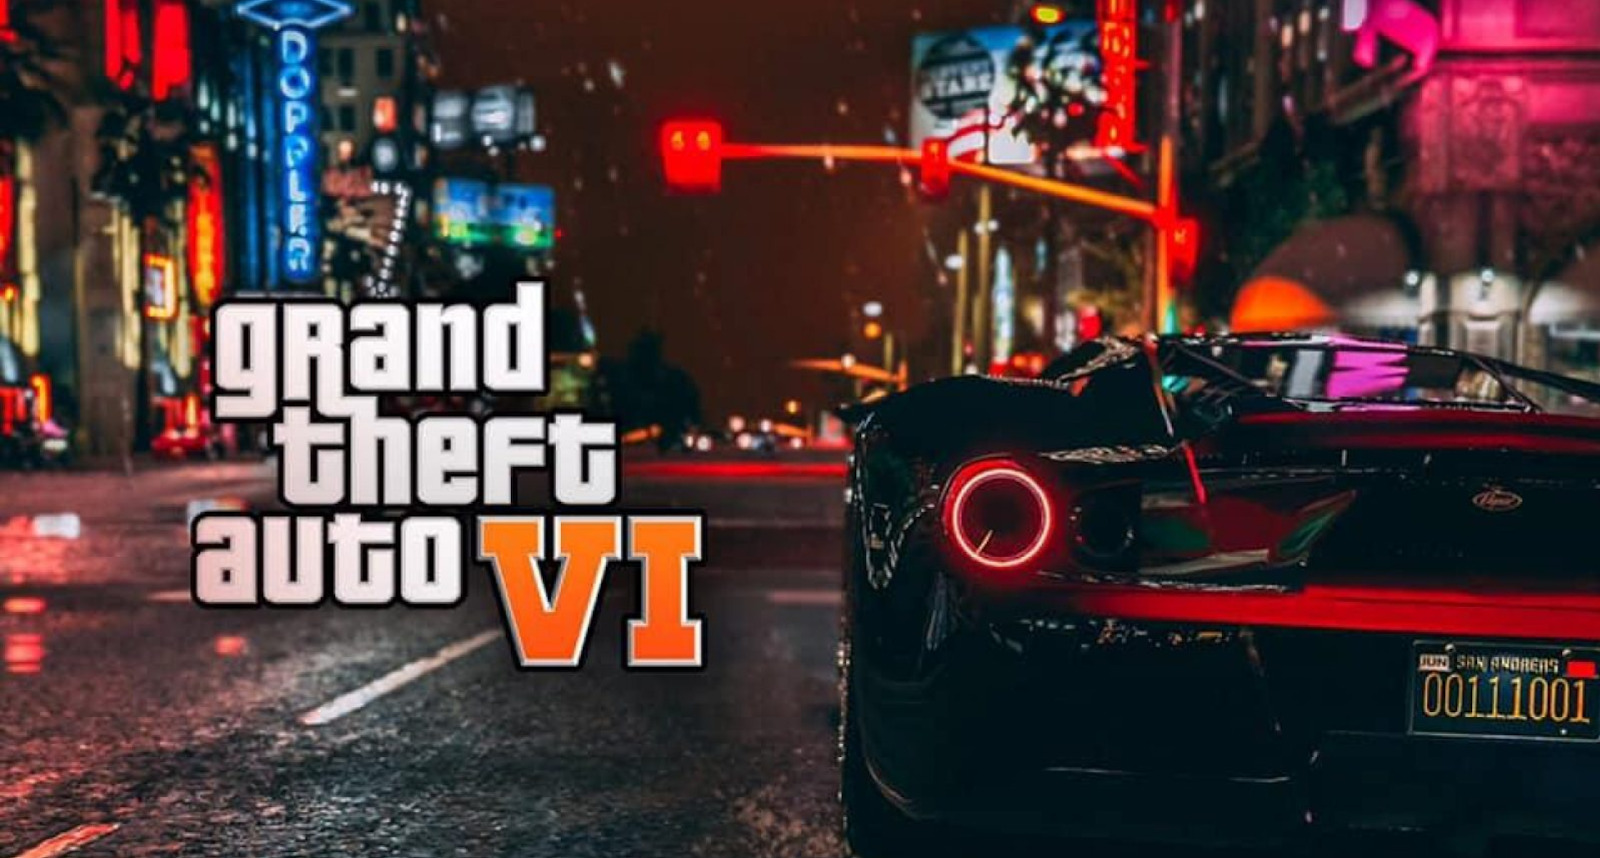 cd key, price comparison, best price, game deal, GTA6 key, buy gta6, gta key, GTA6 game key, buy gta6 key, game key gta6, game deals, video game price comparison, game code, game key, buy key code, buy game key, release gta6, price compare, best game deals, best game deal, cdkey deal, cdkey buy, game code price, download game, free games, preview, release date, where to buy, best price buy, gta6 ps4, gta6 ps5 exclusive, gta6 2021, gta6 ps5, rockstar gta6, cj gta6, cnt zoo gta6, gta6 ps4, gta6 ps5 exclusive, gta6 2021, gta6 ps5, rockstar gta6, cj gta6, cnt zoo gta6, fastest car gta6, fireman mission gta6, glassdoor gta6, gt gta6, gta6 2k, gta6 angi yilda cikacak, gta6 casting, gta6 chernobob, gta6 female protagonist, gta6 forums, gta6 gamepatch, gta6 gameplay real, gta6 games wallpapers,